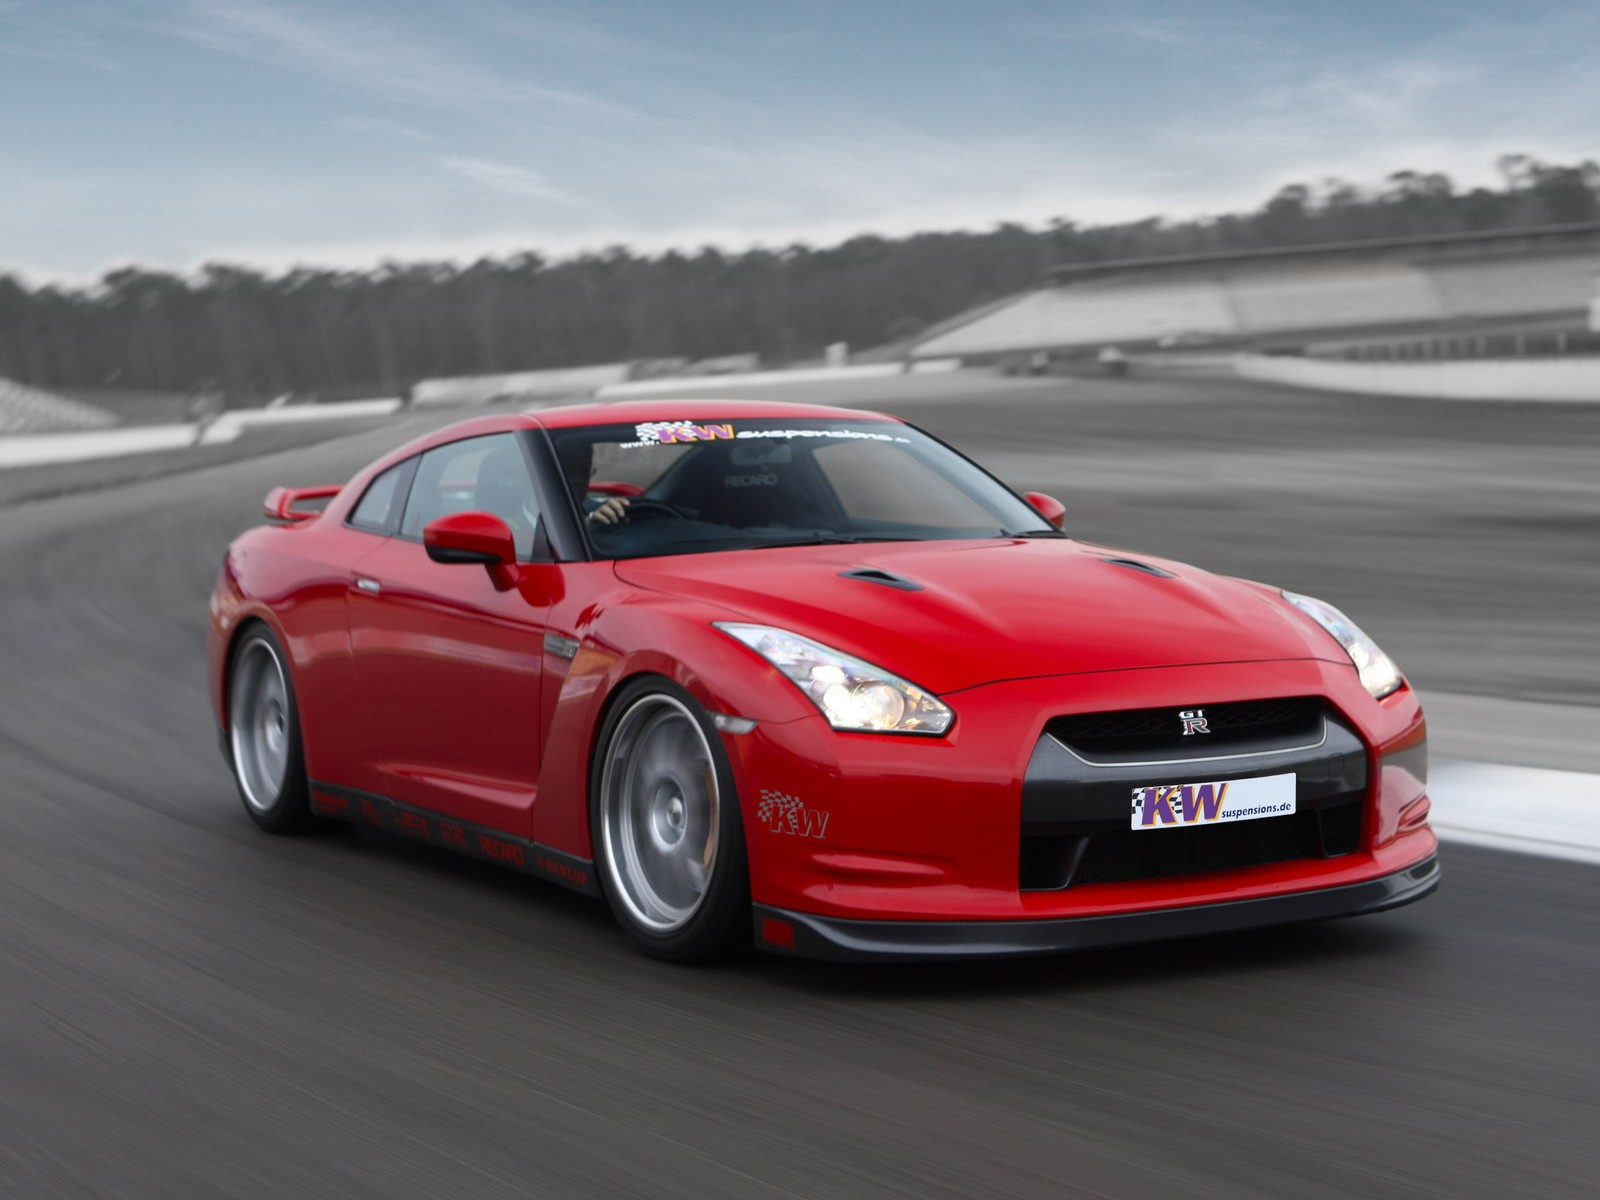 hd wallpapers nissan gtr hd wallpapers nissan gtr hd wallpapers 1600x1200